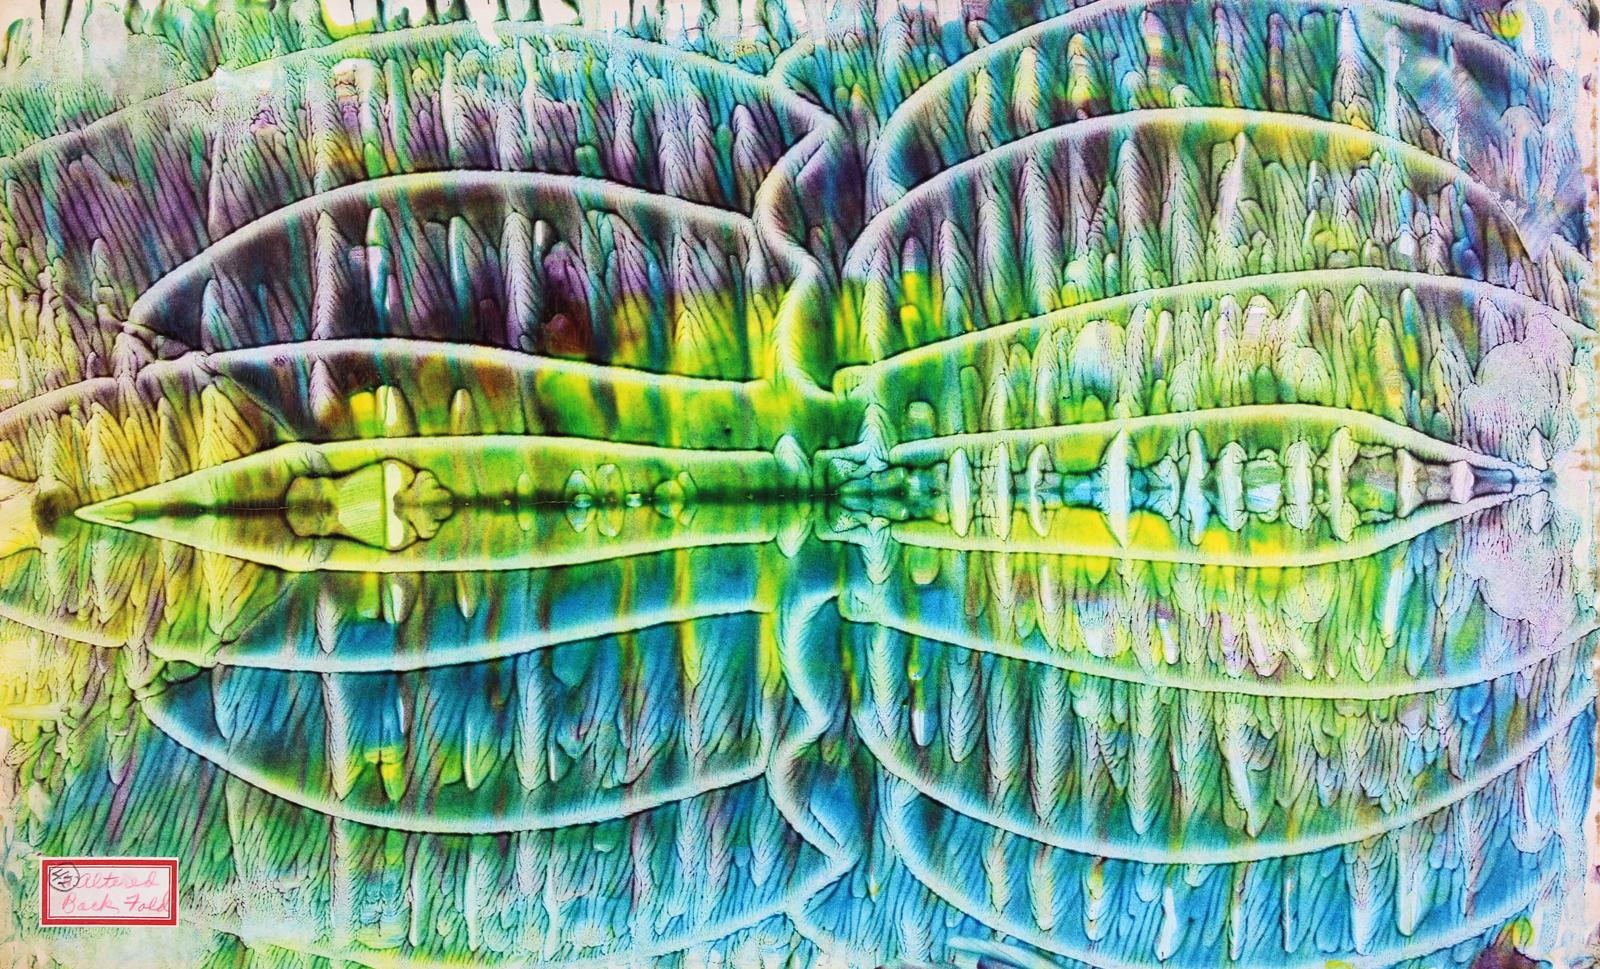 A color abstract painting by a child